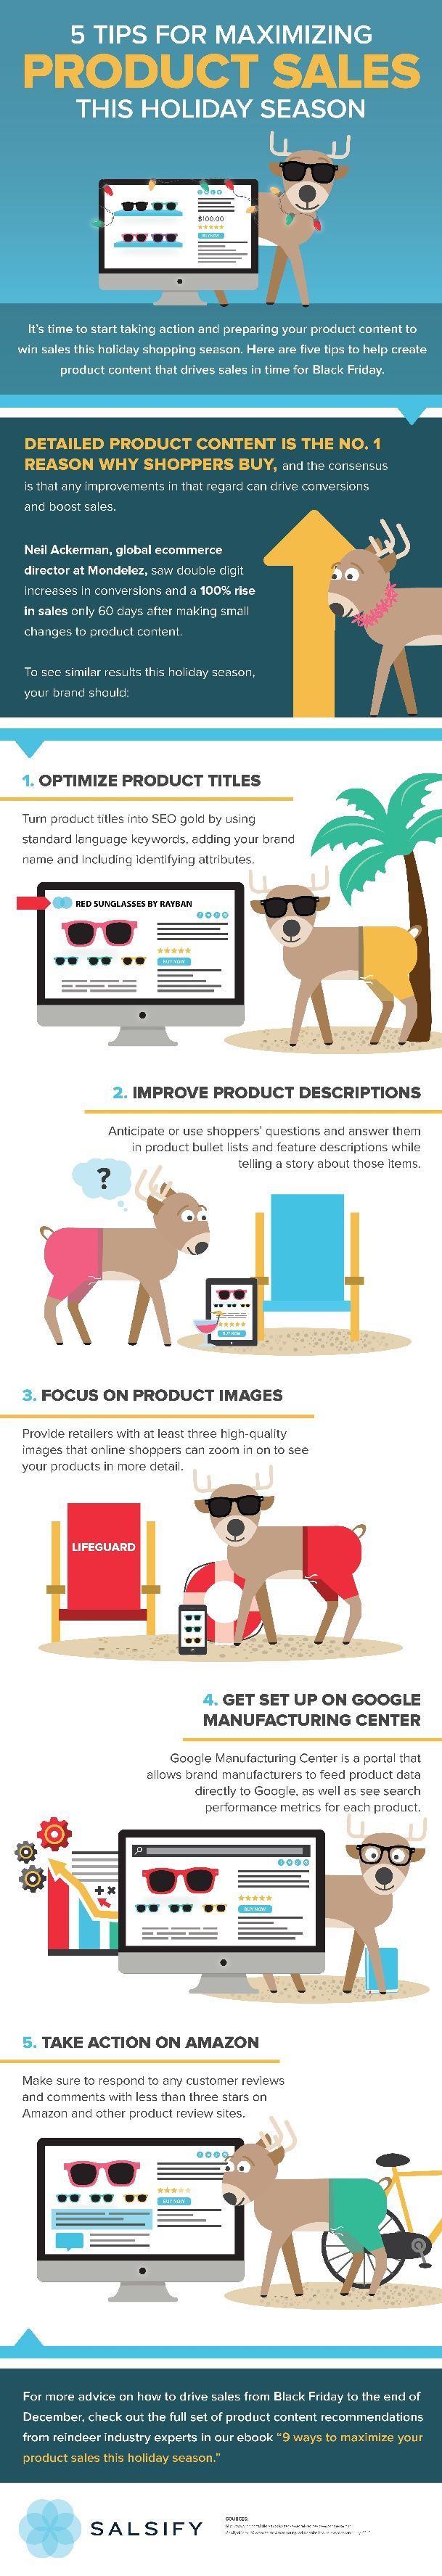 5 Tips for Maximizing Product Sales This Holiday Season